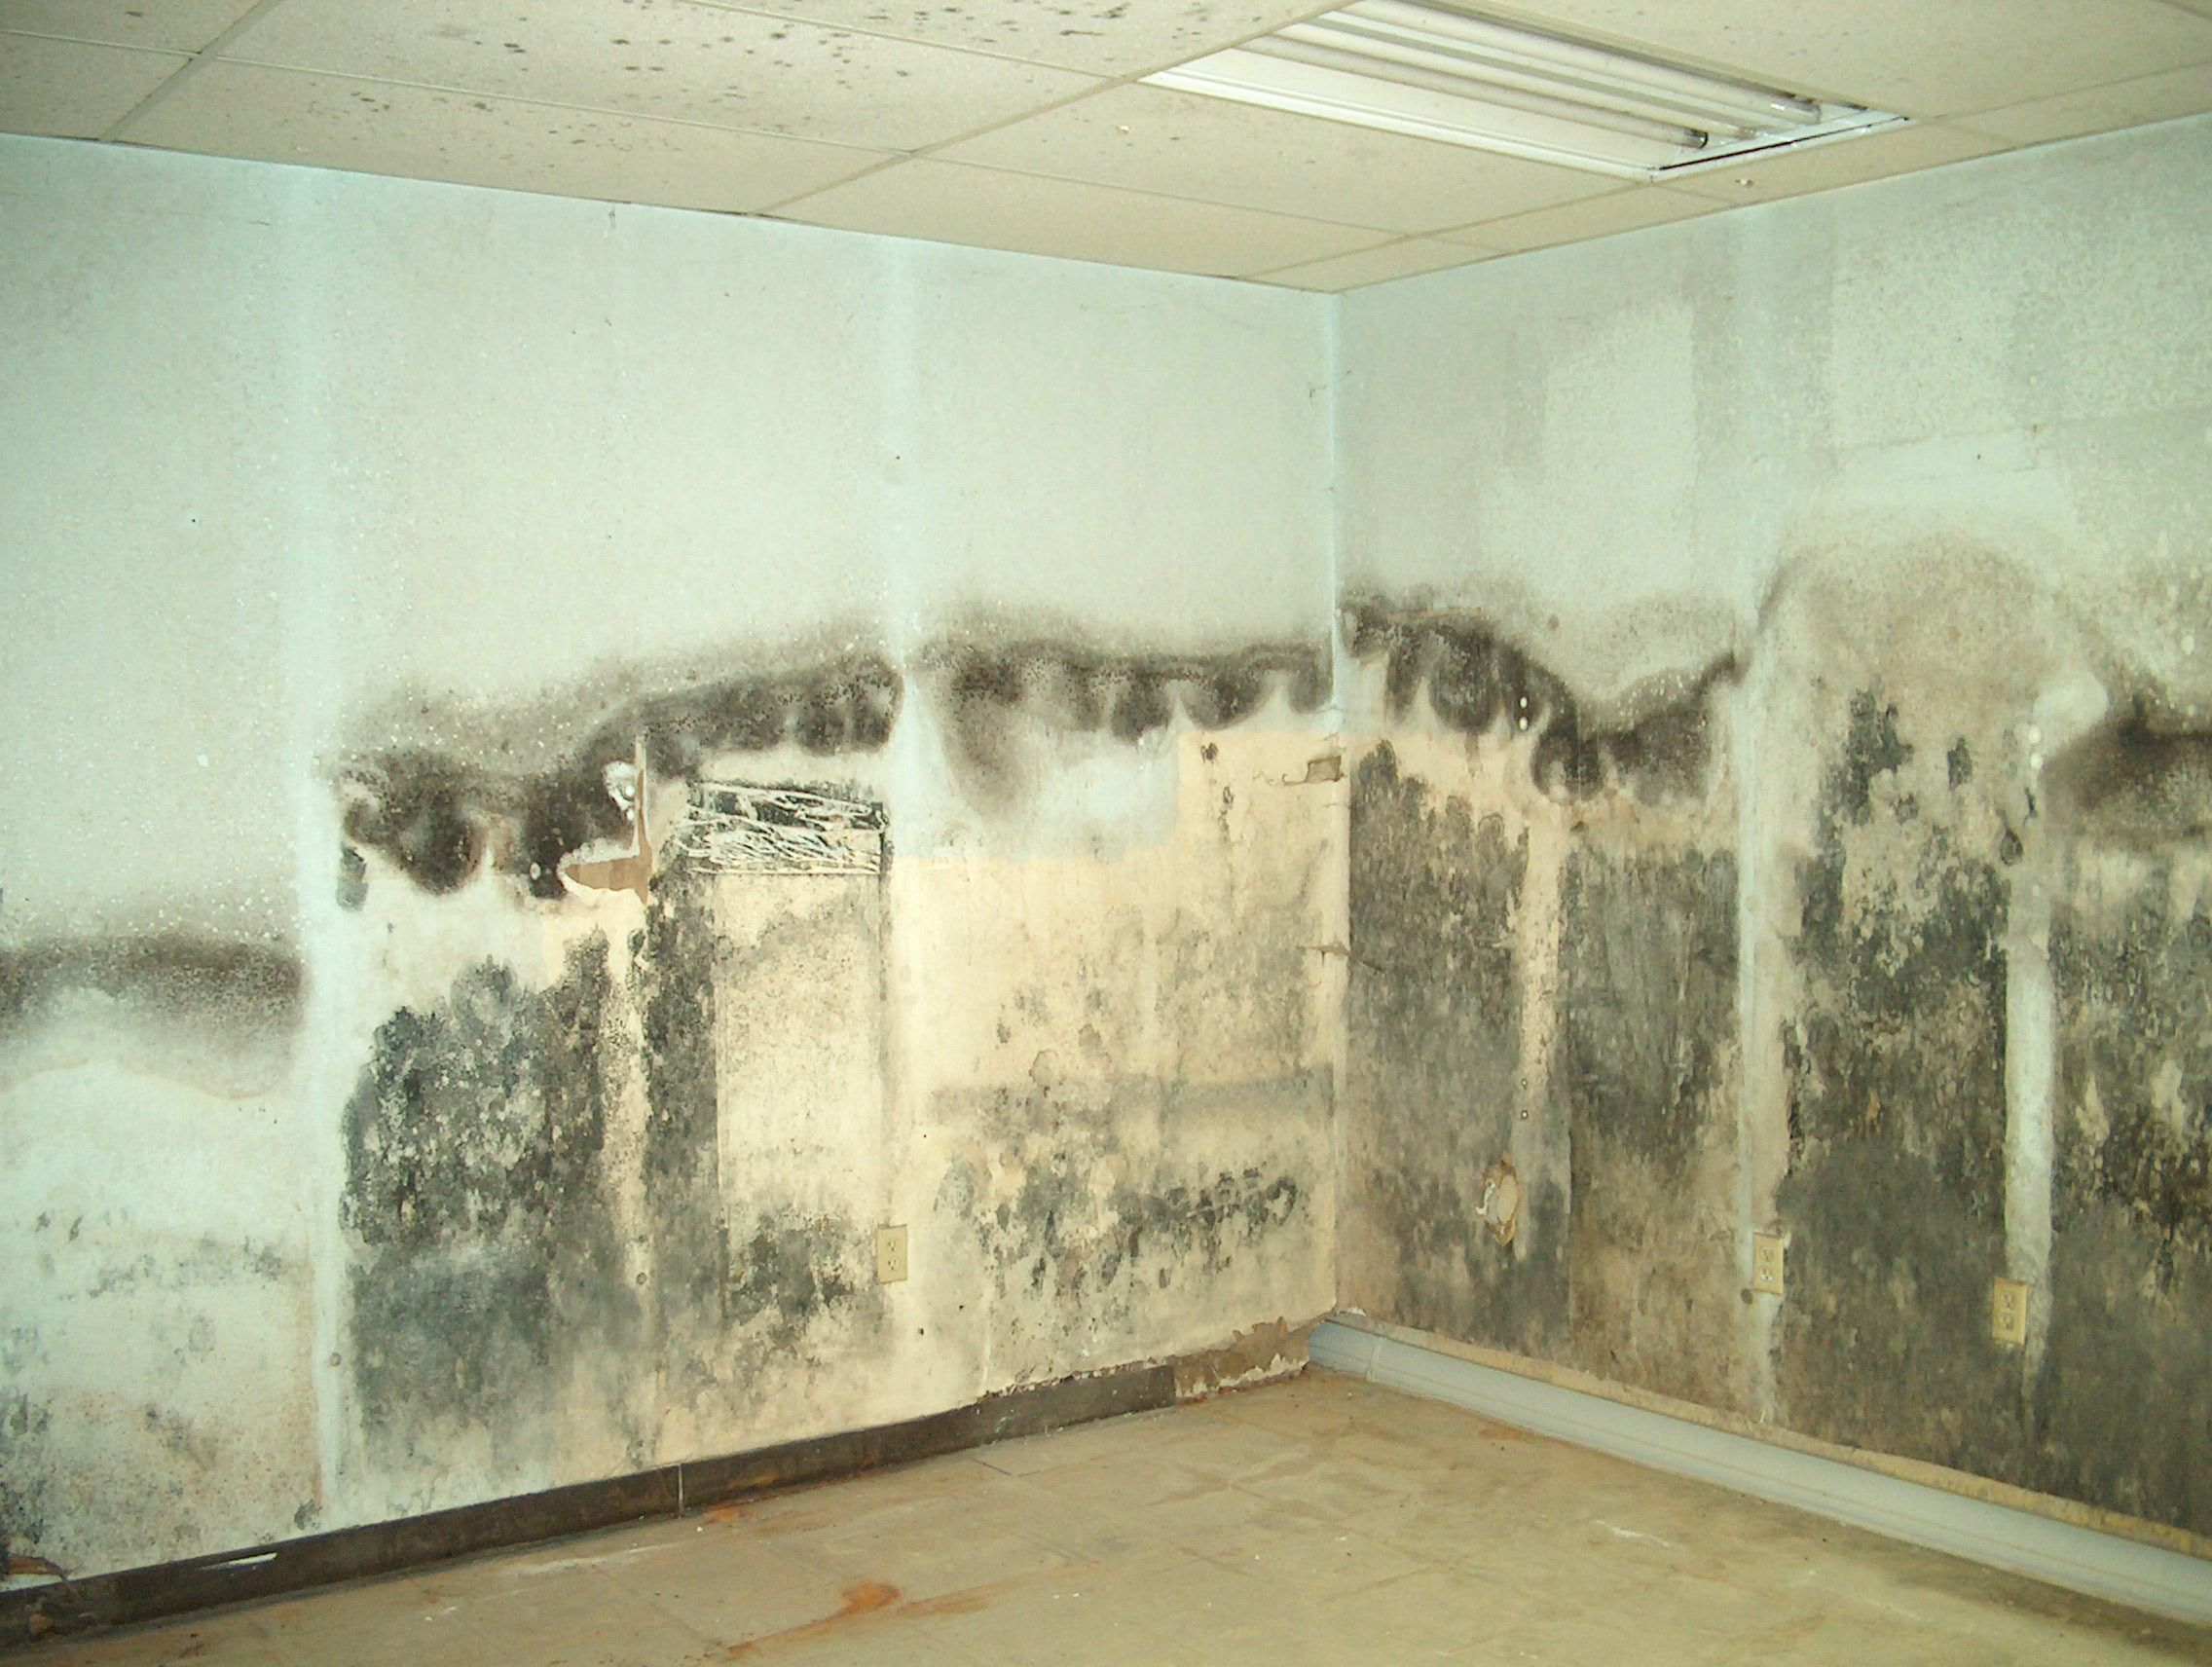 Penicillin mold  If your bathroom or any part of your home looks like this. Penicillin mold  If your bathroom or any part of your home looks